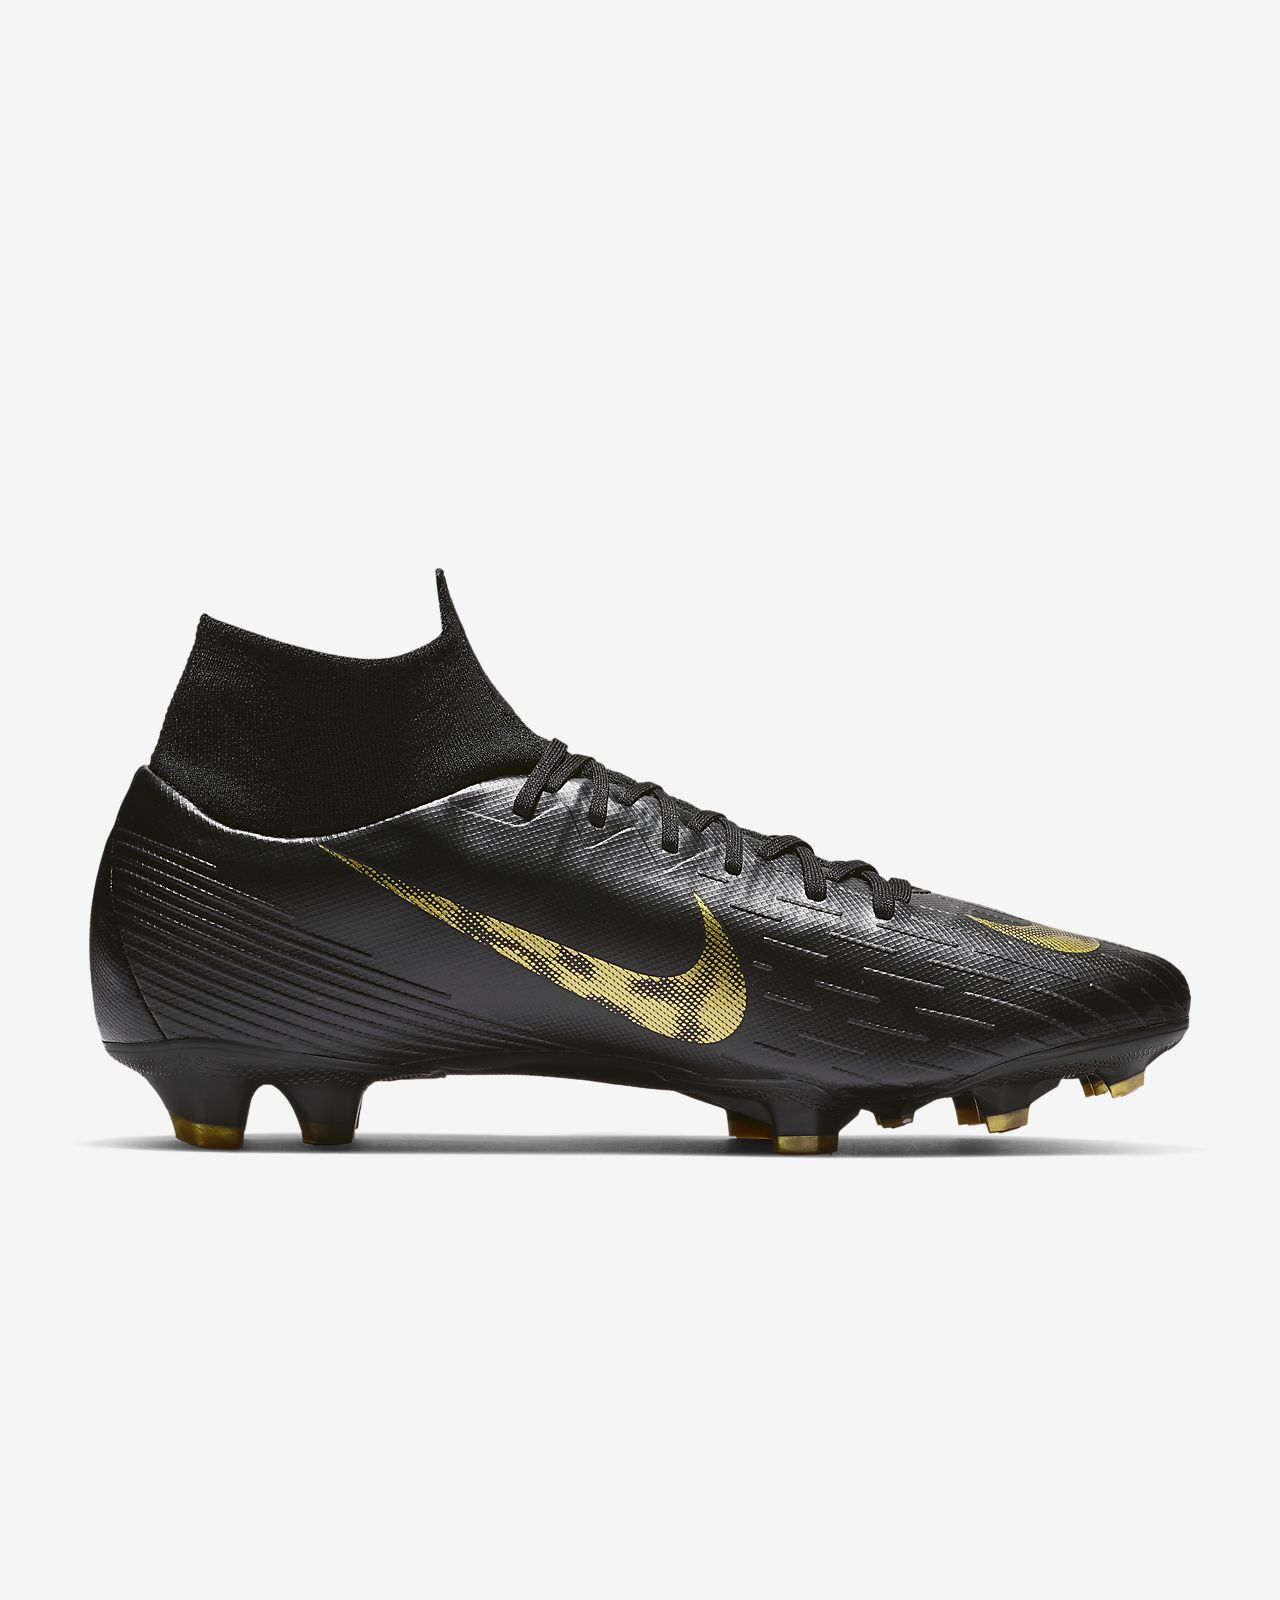 e85668e4d Nike Superfly 6 Pro FG Firm-Ground Football Boot. Nike.com CA